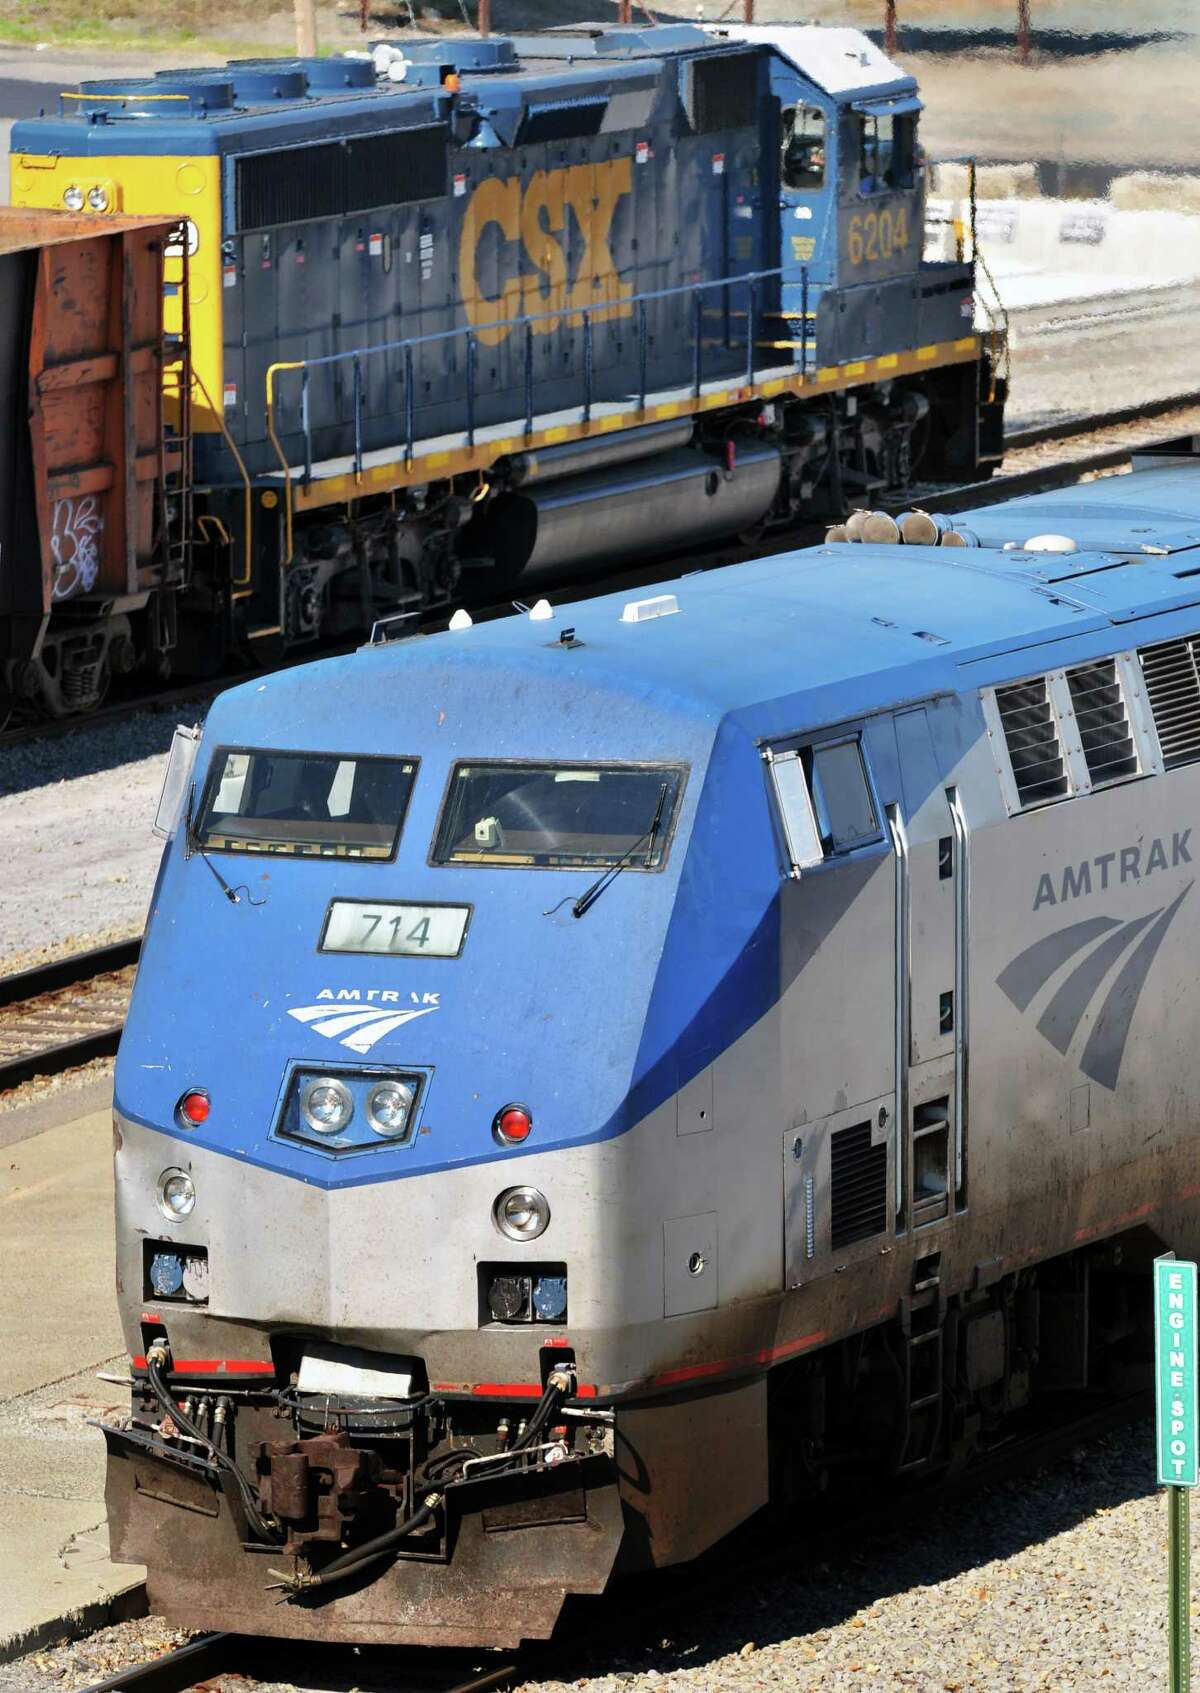 A southbound AMTRAK train and a northbound CSX freight at the Rensselaer station Tuesday afternoon October 12, 2010. (John Carl D'Annibale / Times Union)